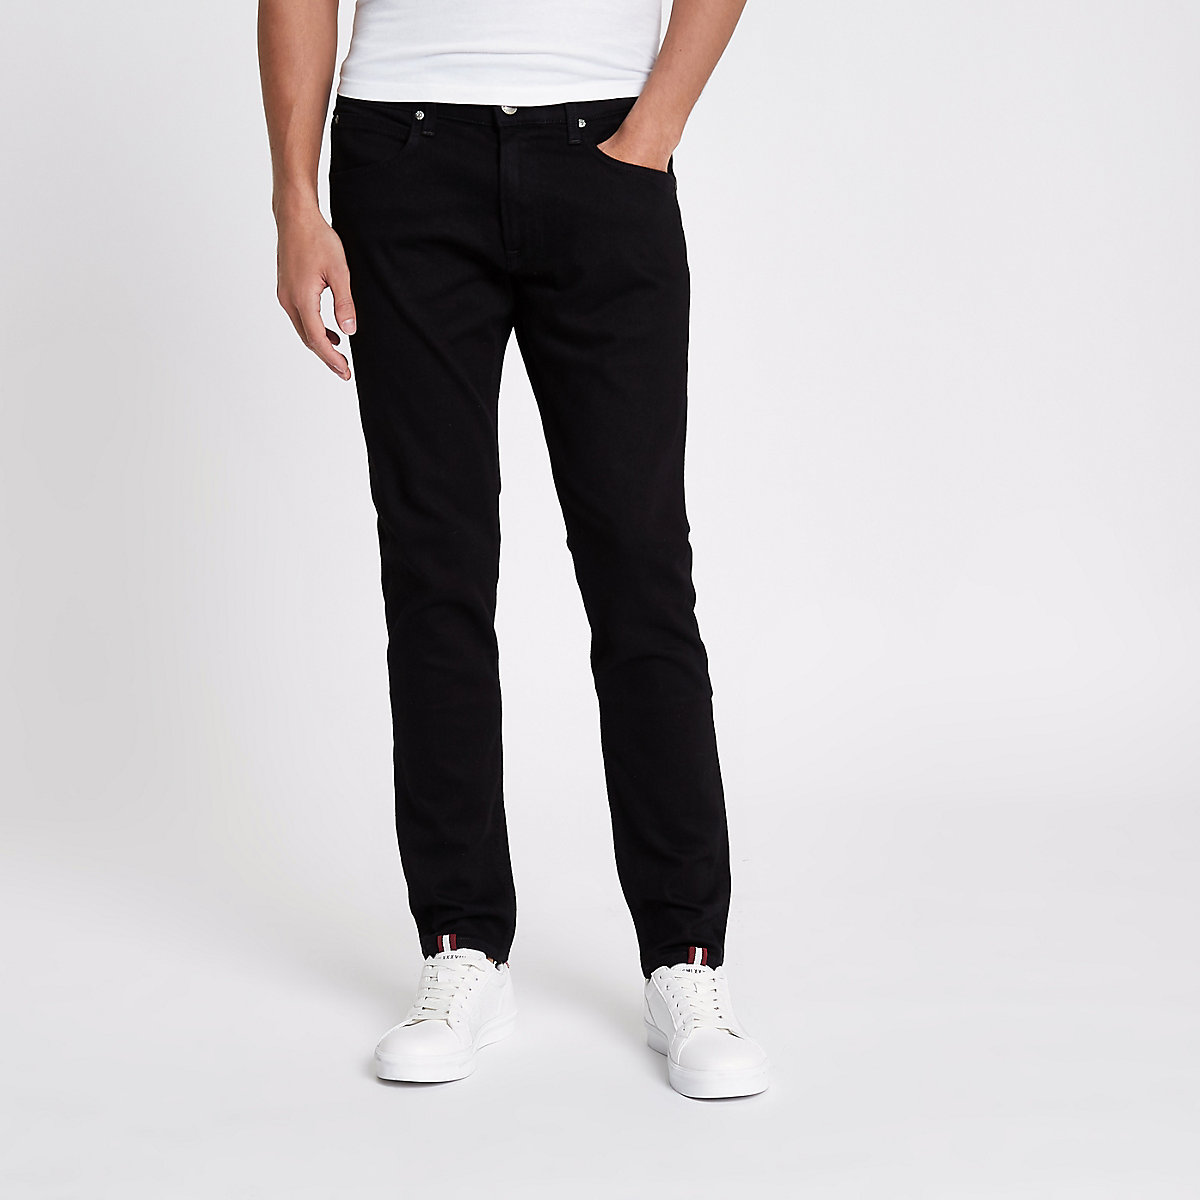 Lee black slim fit tapered Luke jeans